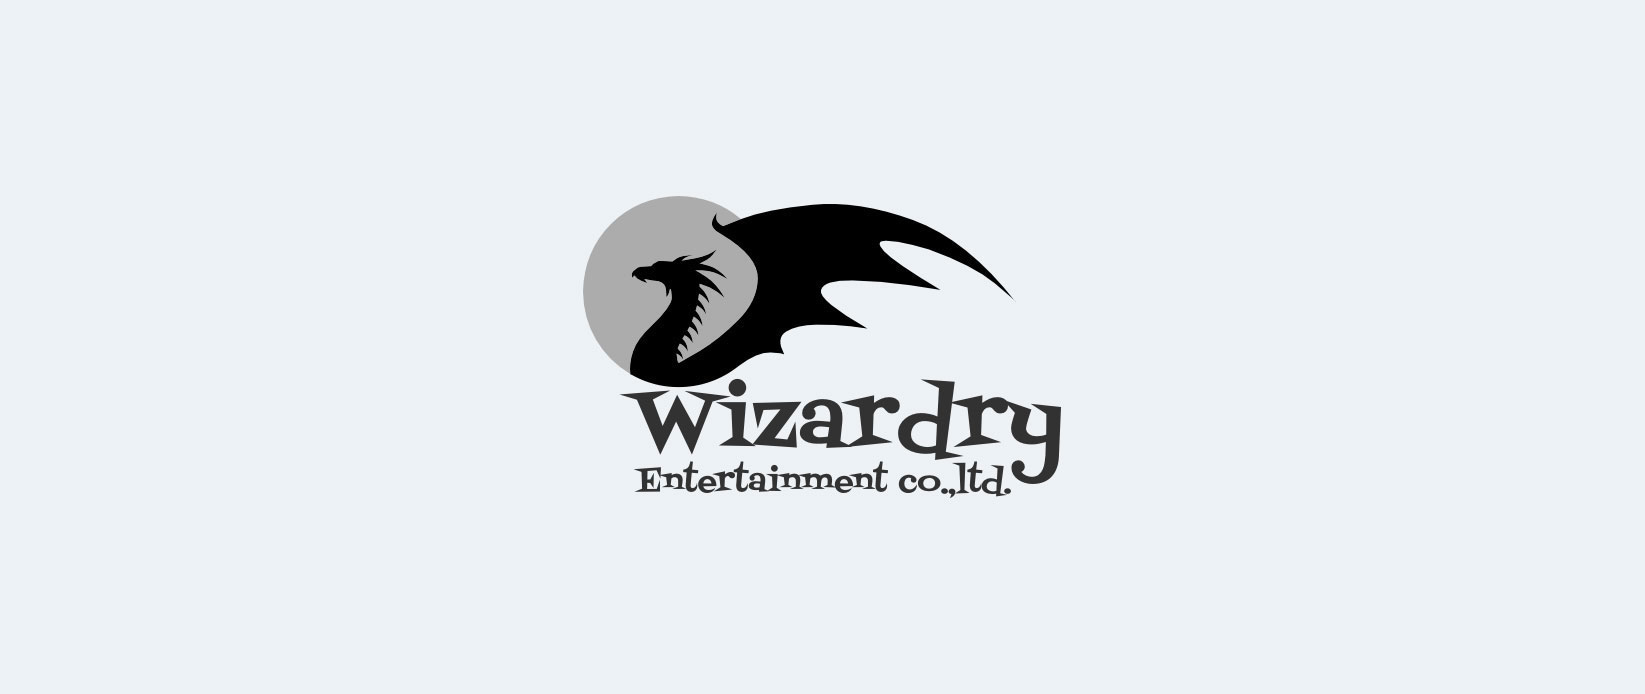 PRODUCE / MANAGEMENT / CASTING,etc. WIZARDRY Entertainment co.,ltd.